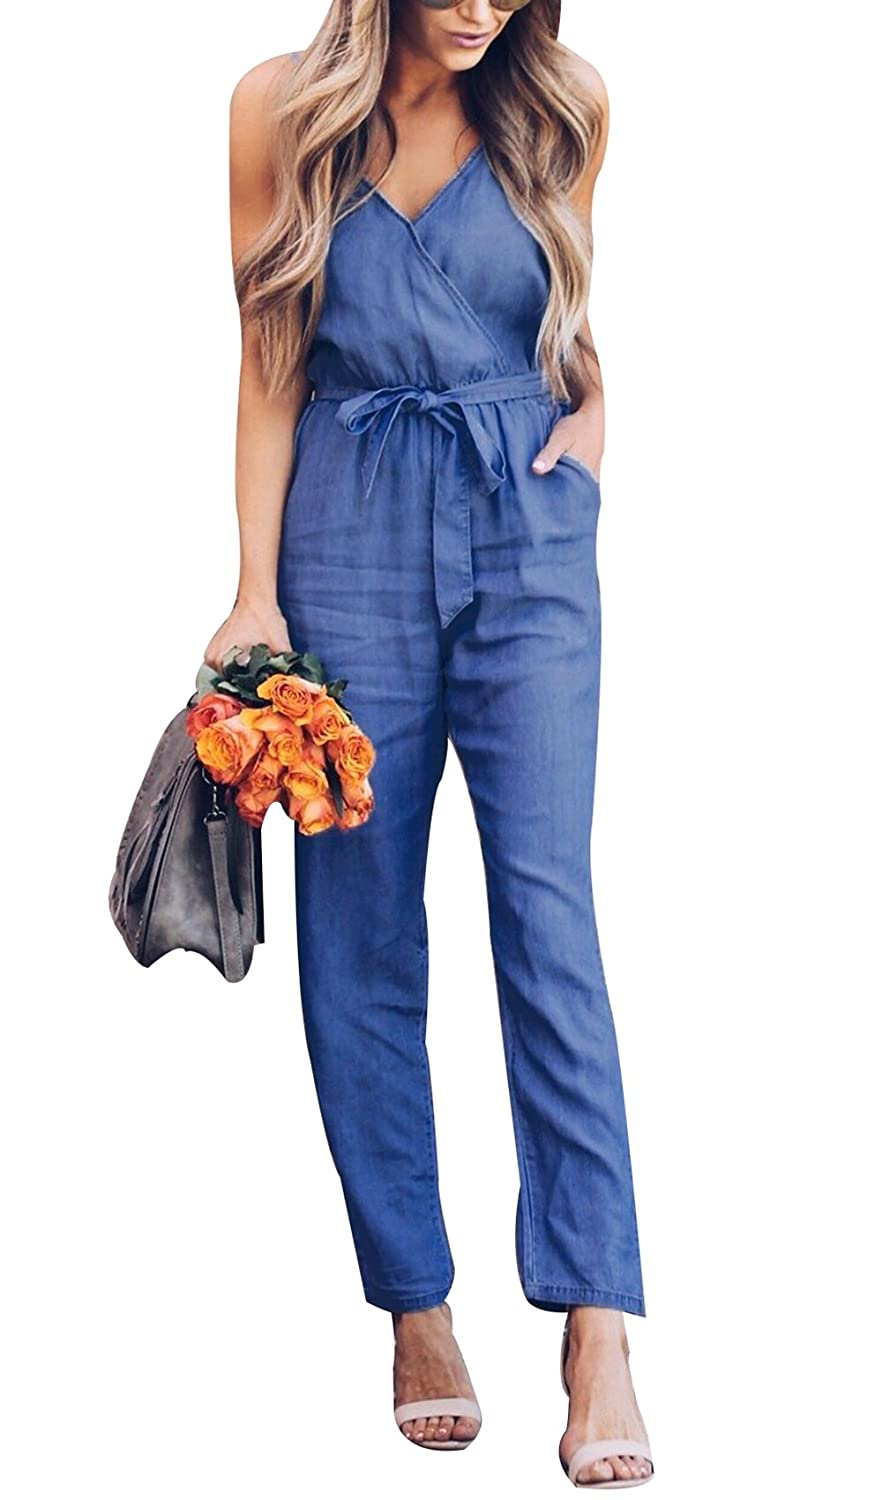 Doqcey Women's Denim Spaghetti Strap High Waist Belted Stretchy Long Pants Jumpsuits Rompers M)